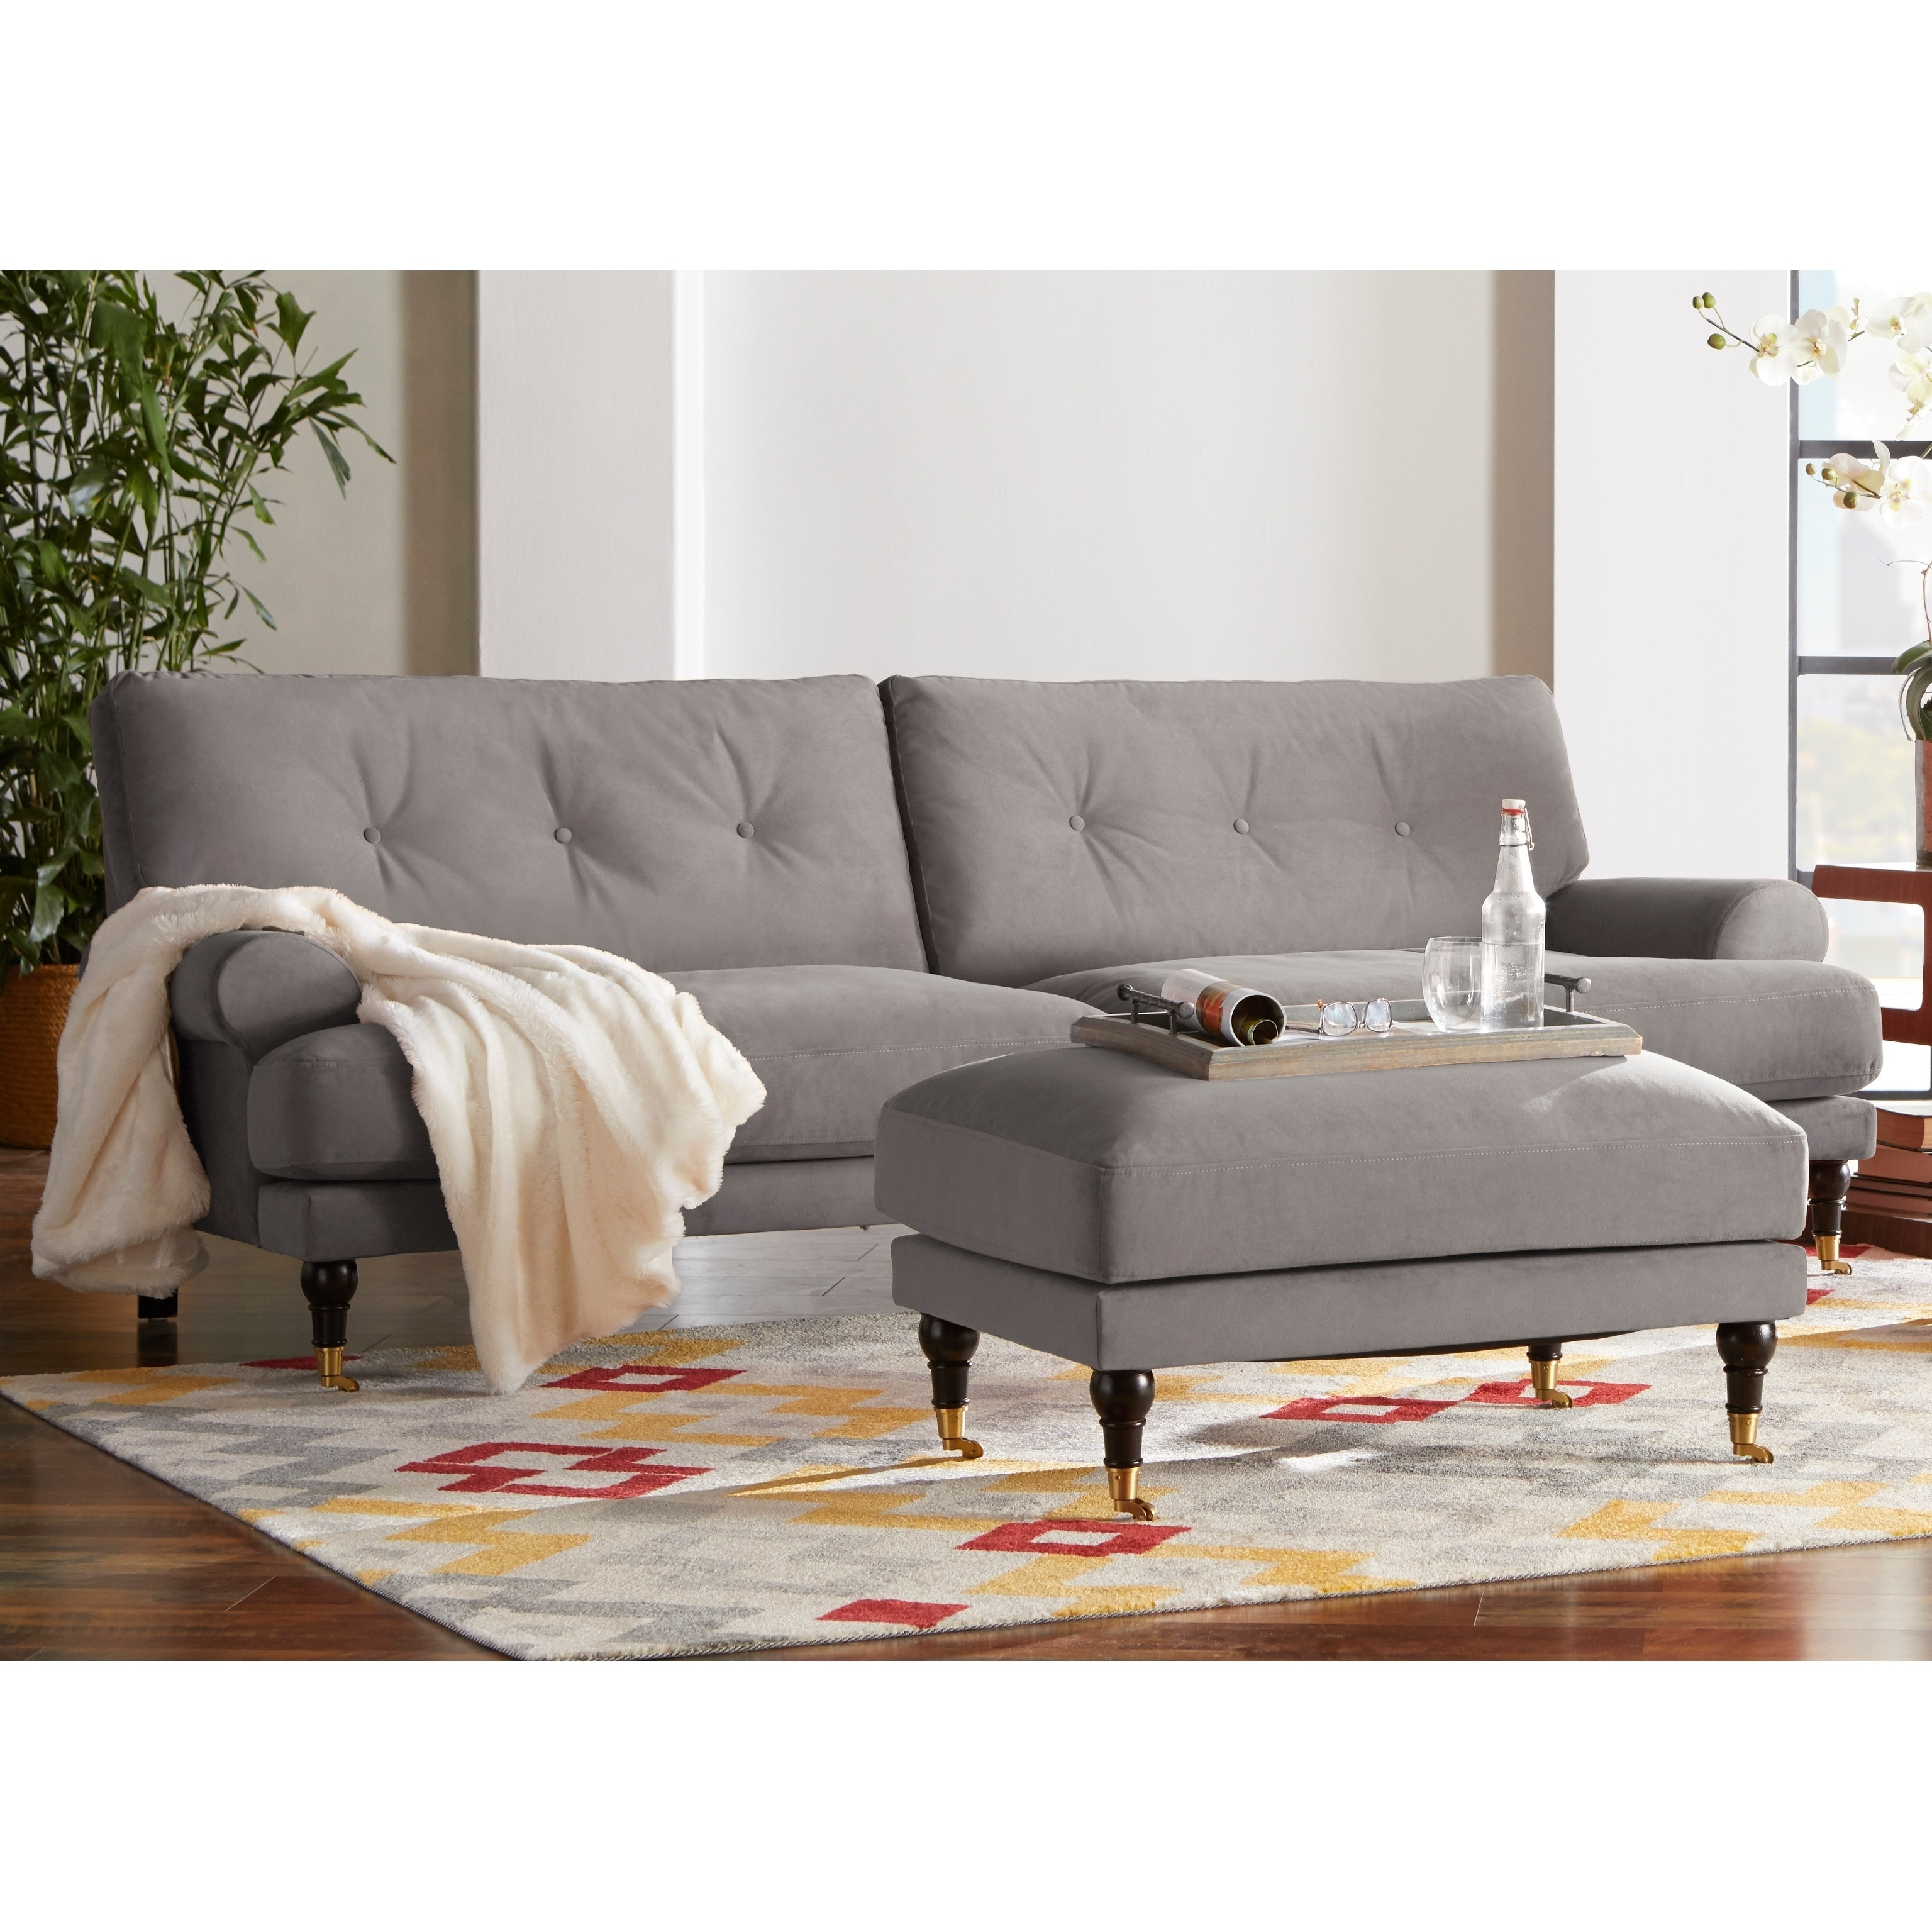 Shop Contemporary Fabric Rolled Arm Sofa - 31 inches h x 92 inches ...